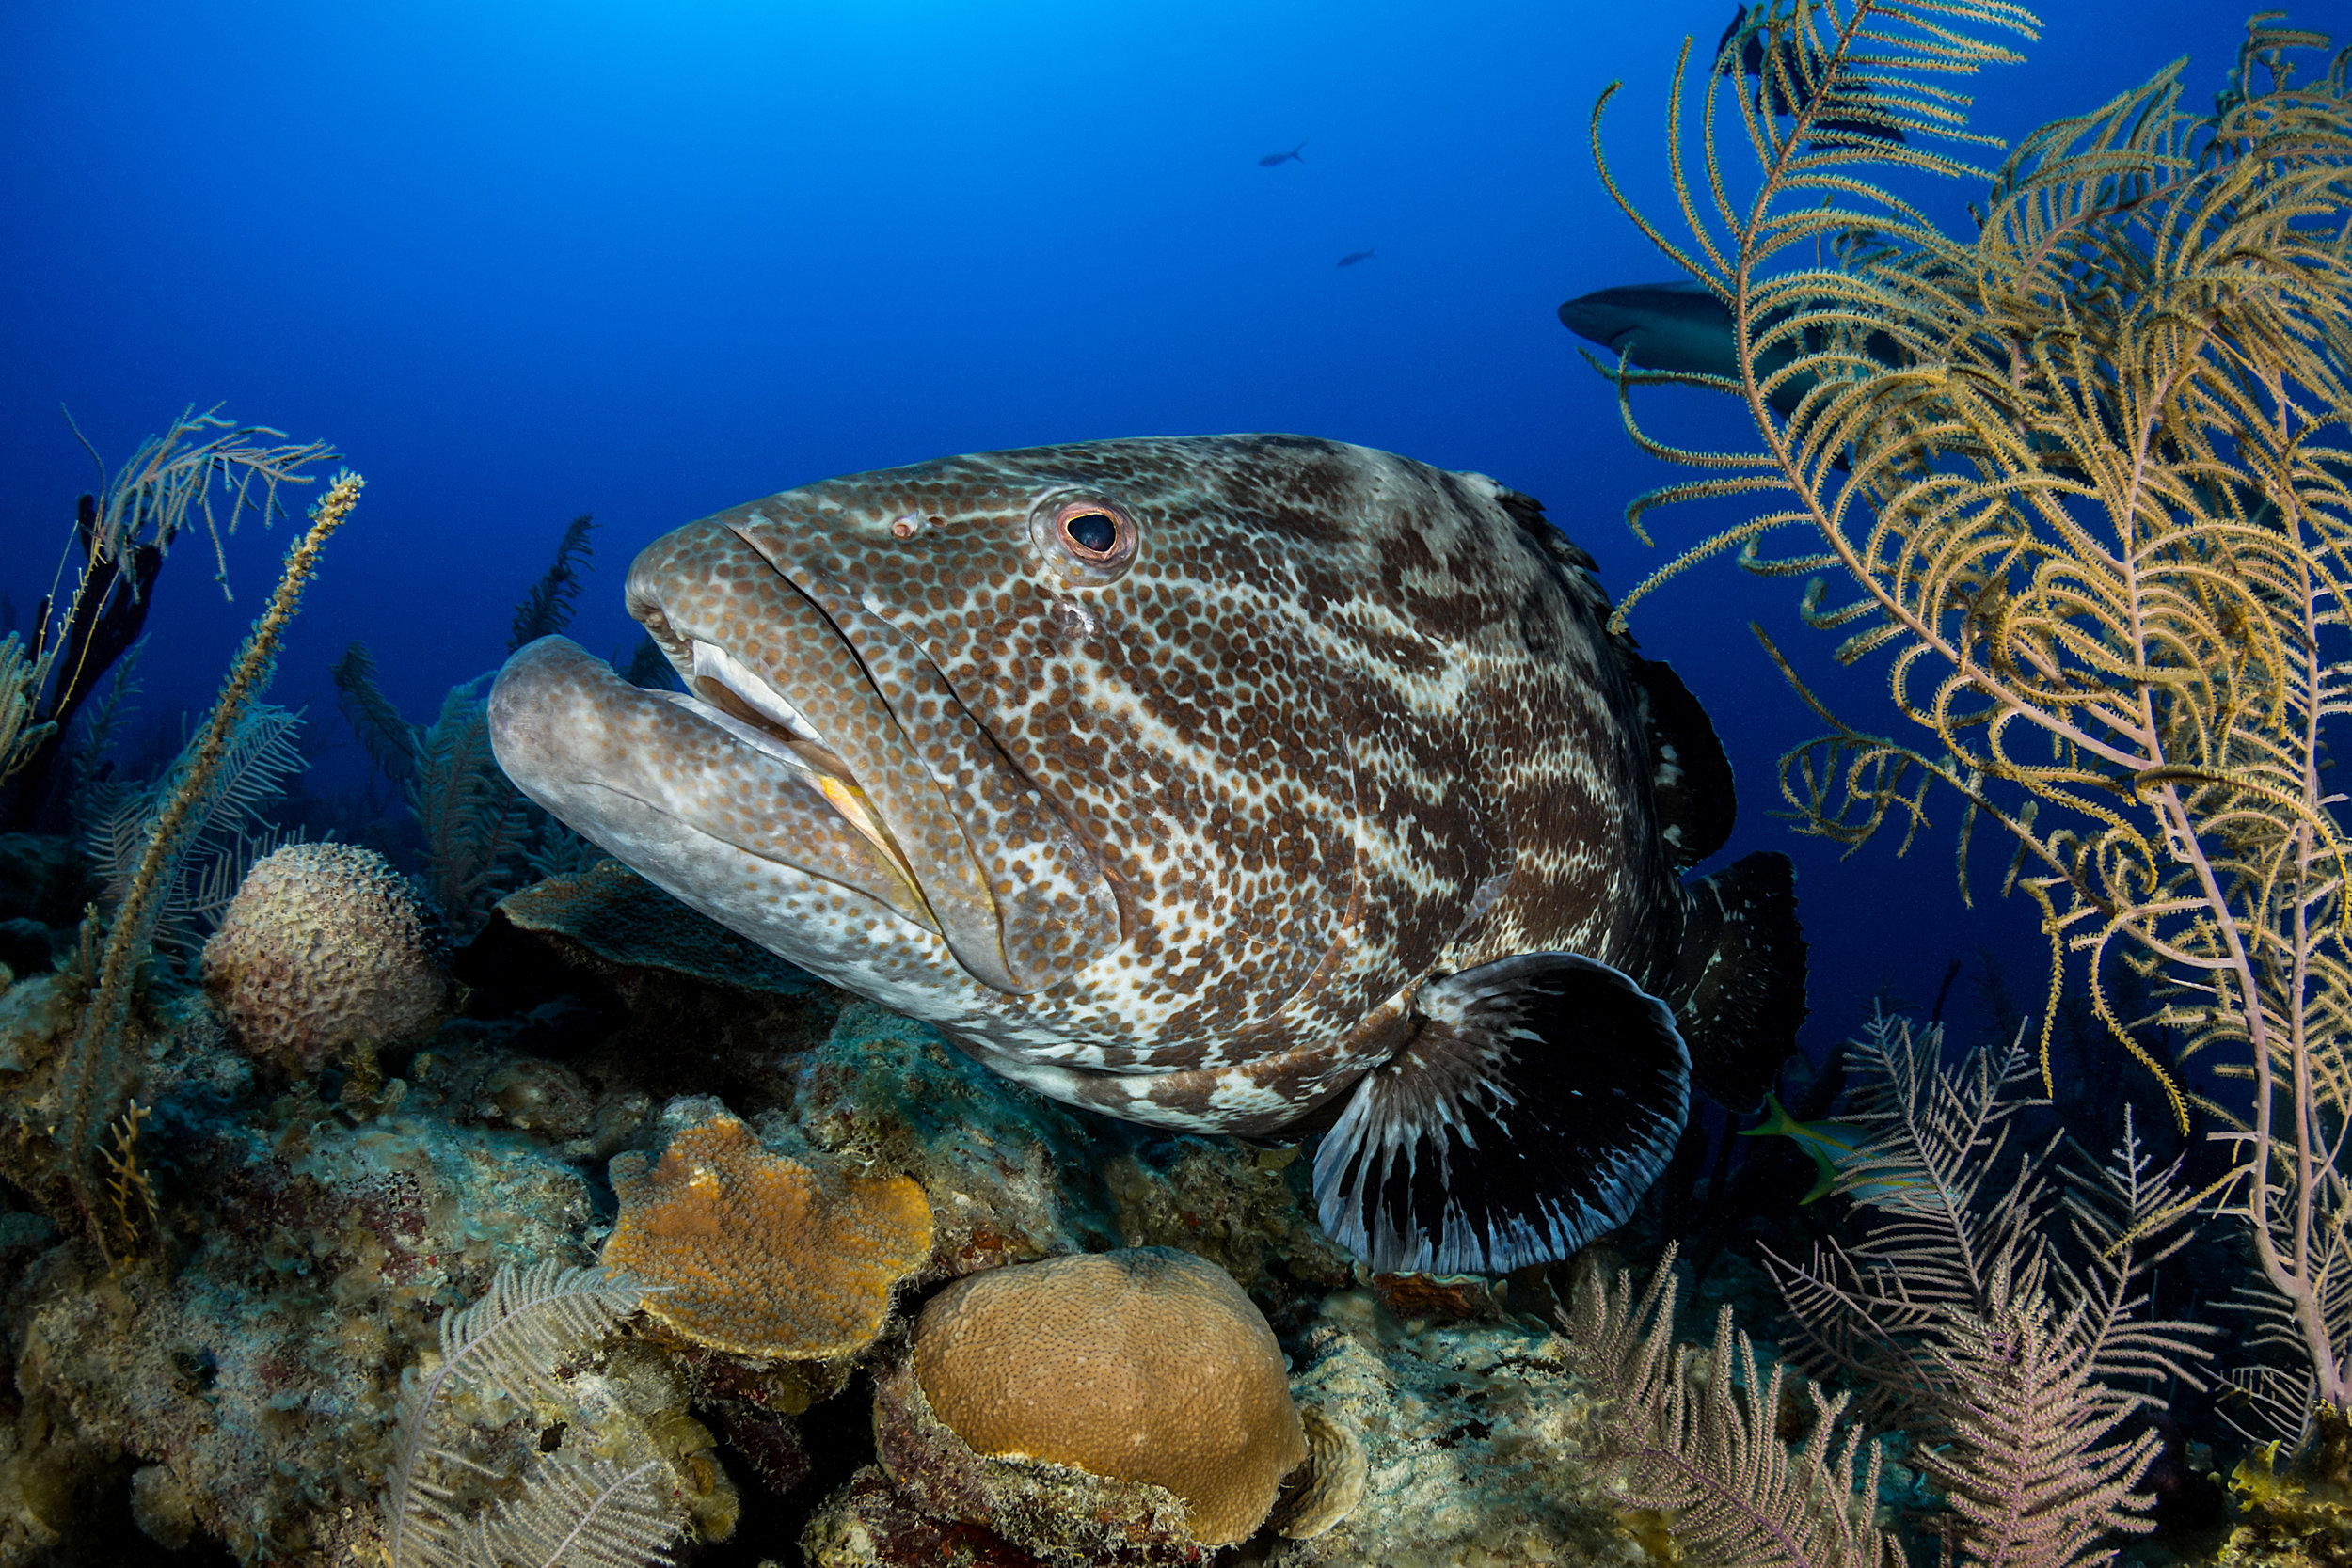 GOLIATH GROUPER in cuba credit: fabrice dudenhofer / coral reef image bank